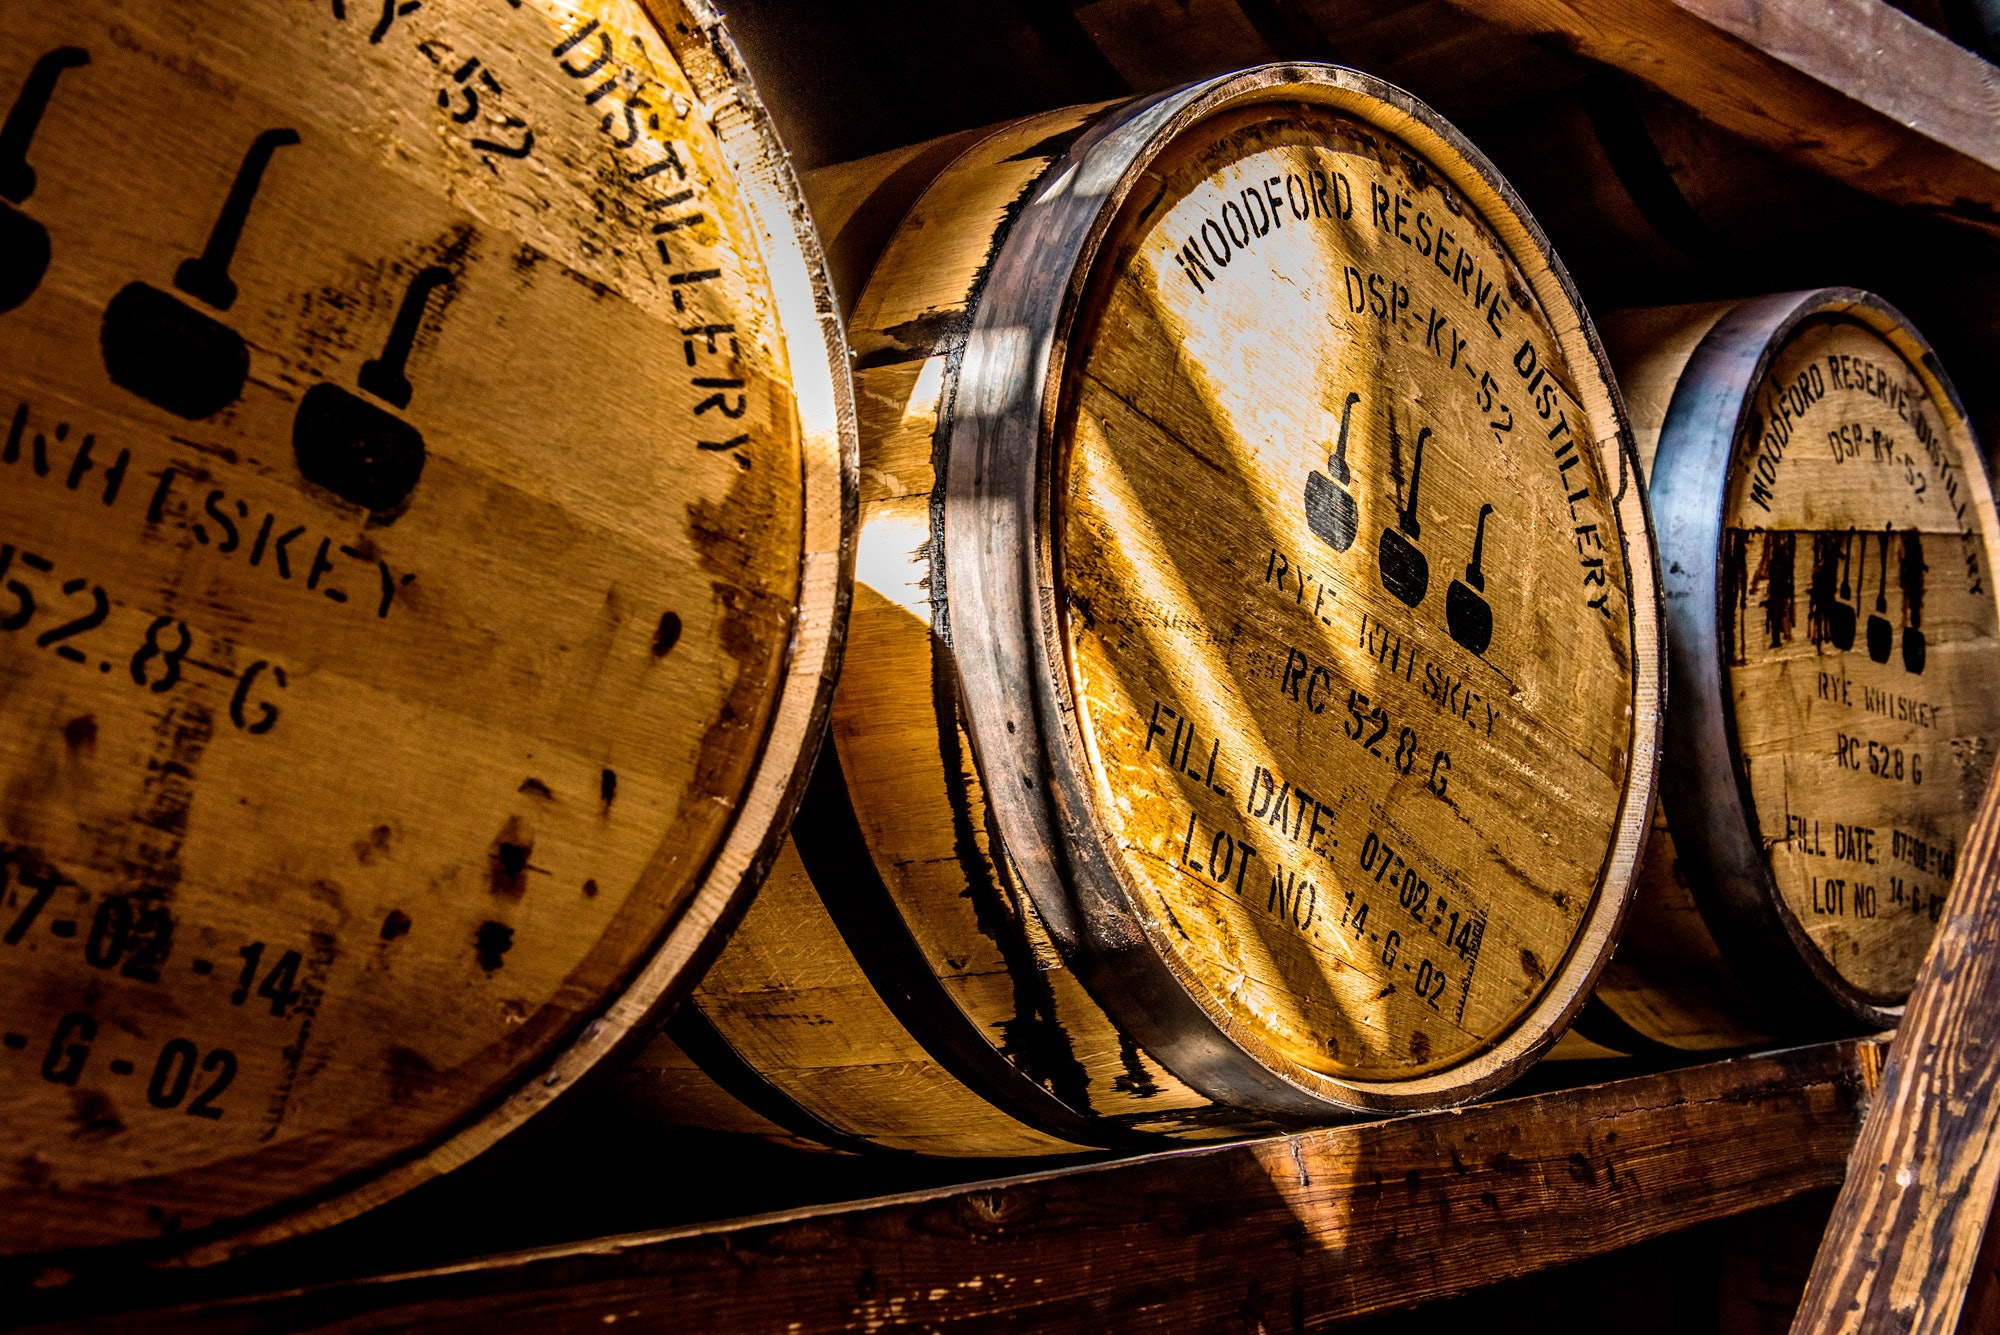 Whiskey barrels at the Woodford Reserve Distillery, Kentucky © thomas carr / Shutterstock